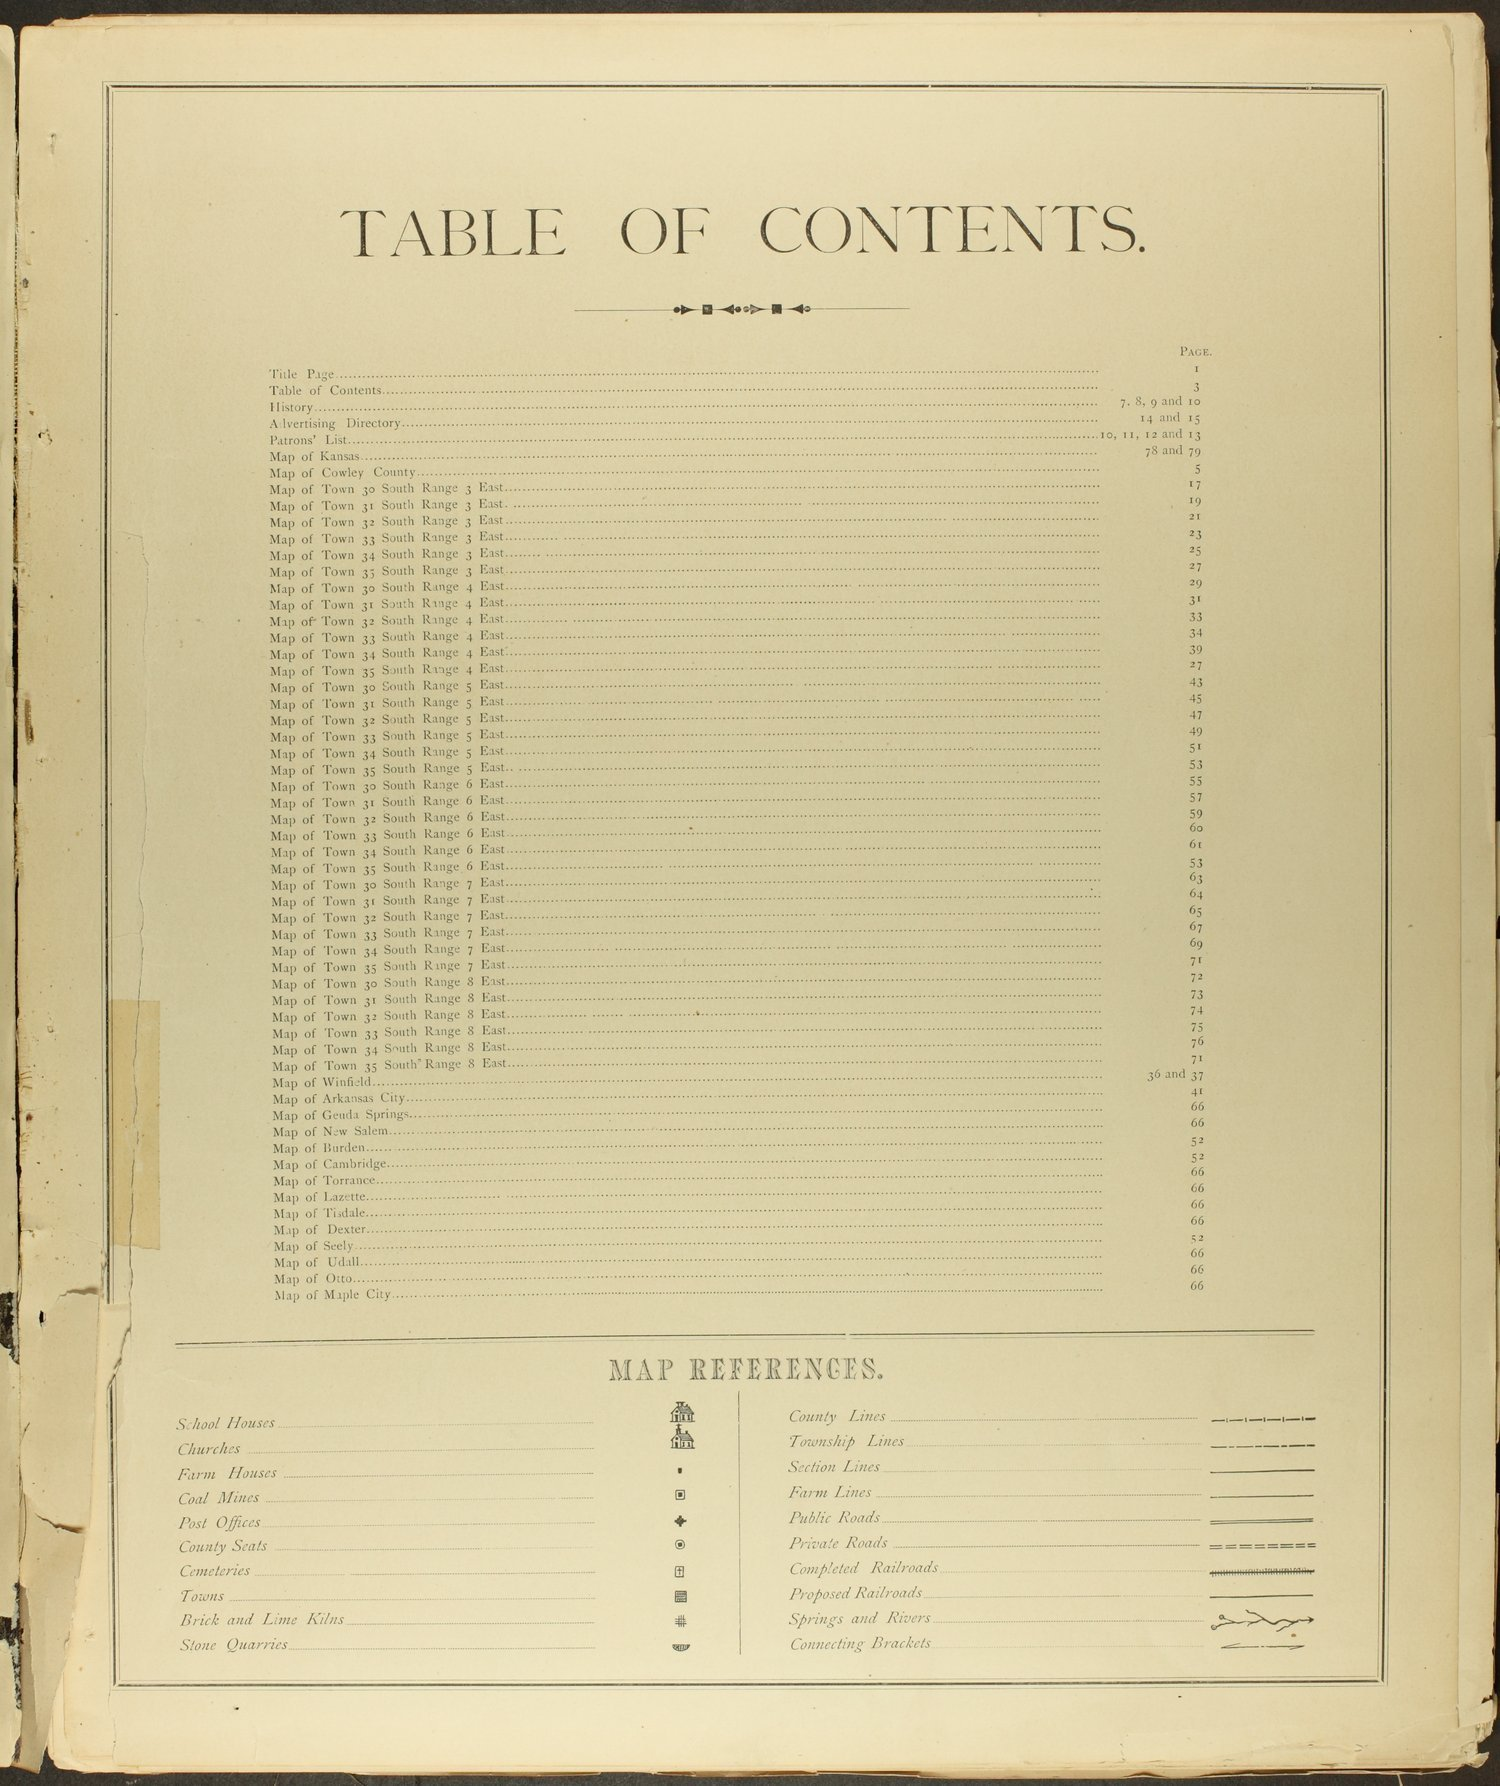 Historical atlas of Cowley County, Kansas - Table of Contents